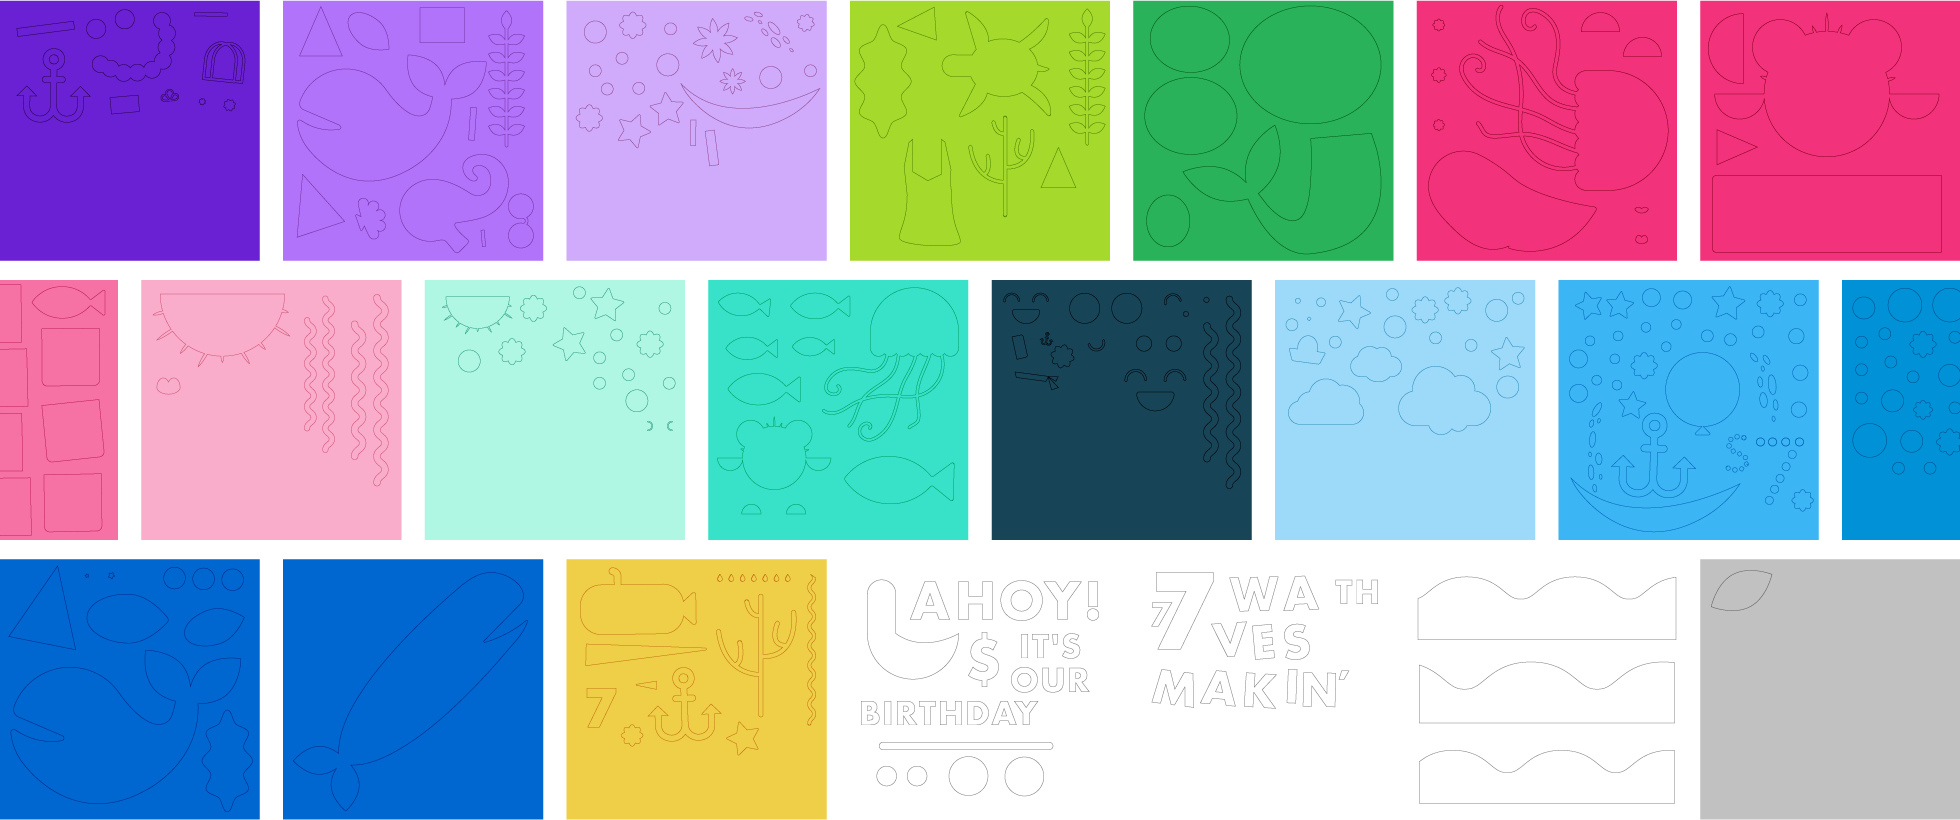 """I took the placements and pulled apart all the digital shapes, determined my largest piece that would fit the 12""""x12"""" scrapbook paper, scaled all pieces proportionally, and organized them by color in order to cut them out in groups. It took about 12 hours to cut all the shapes and I ended up with over 330 individual pieces."""